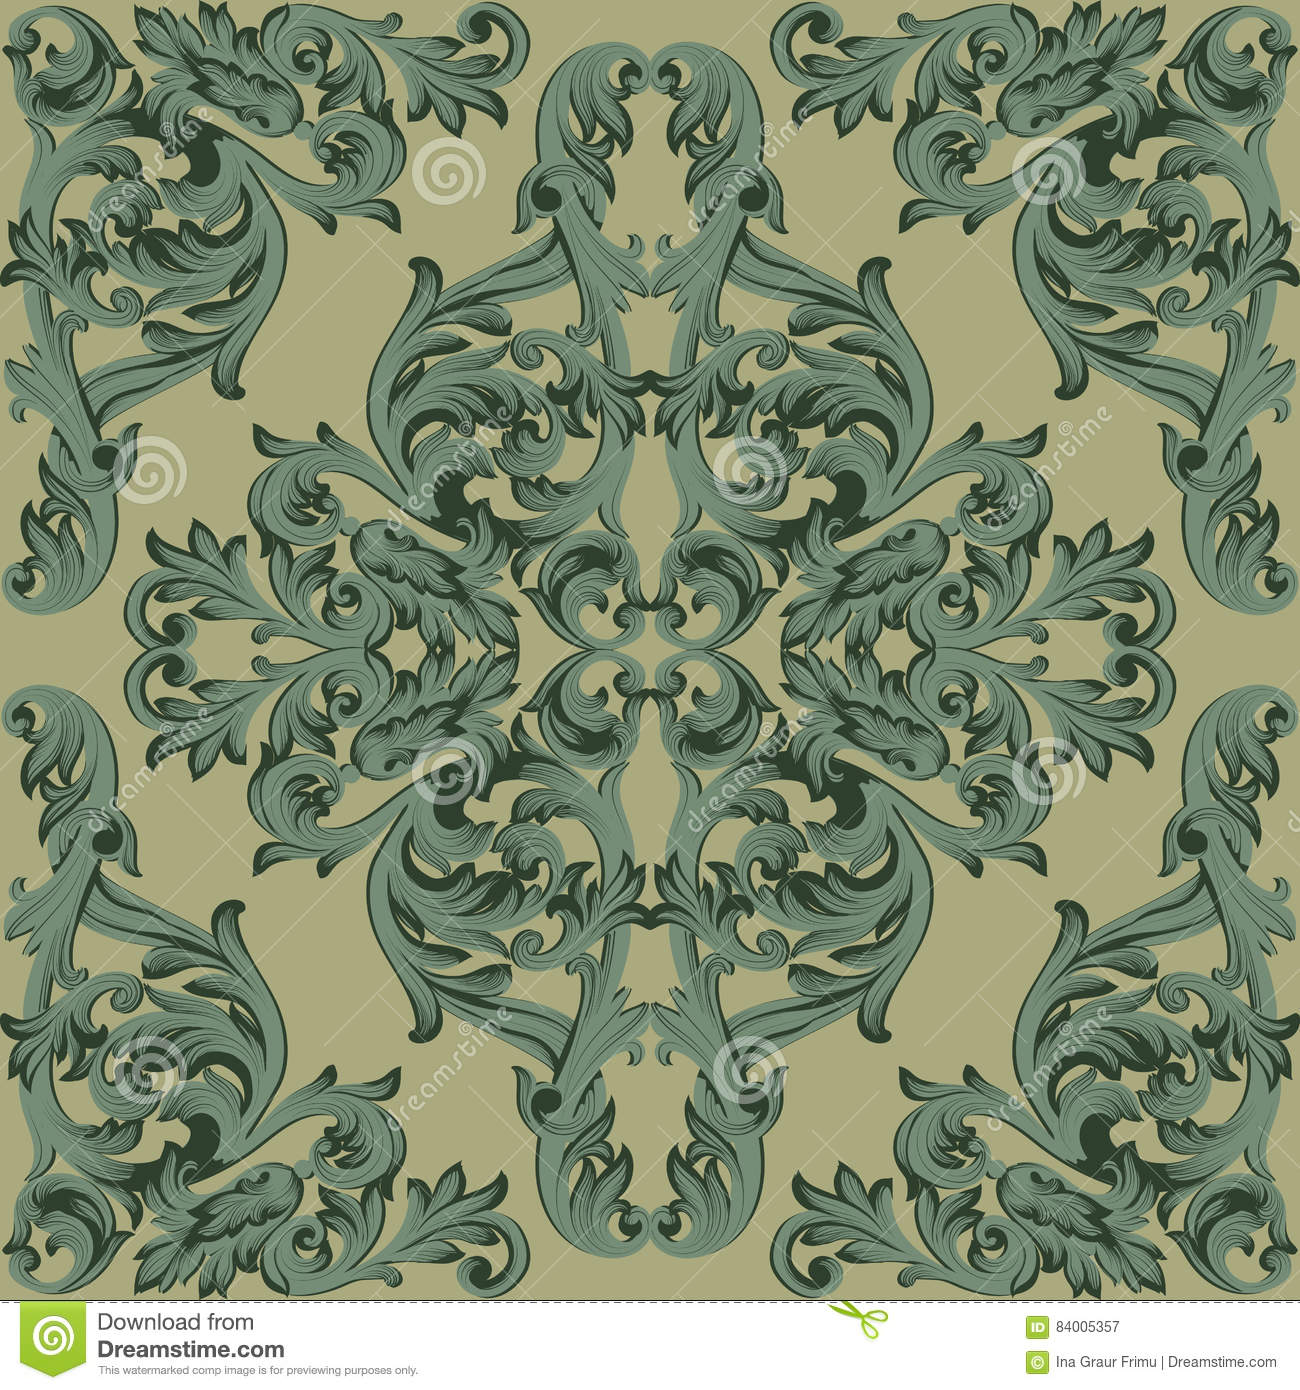 Vintage Baroque Damask Floral Pattern Acanthus Imperial Style